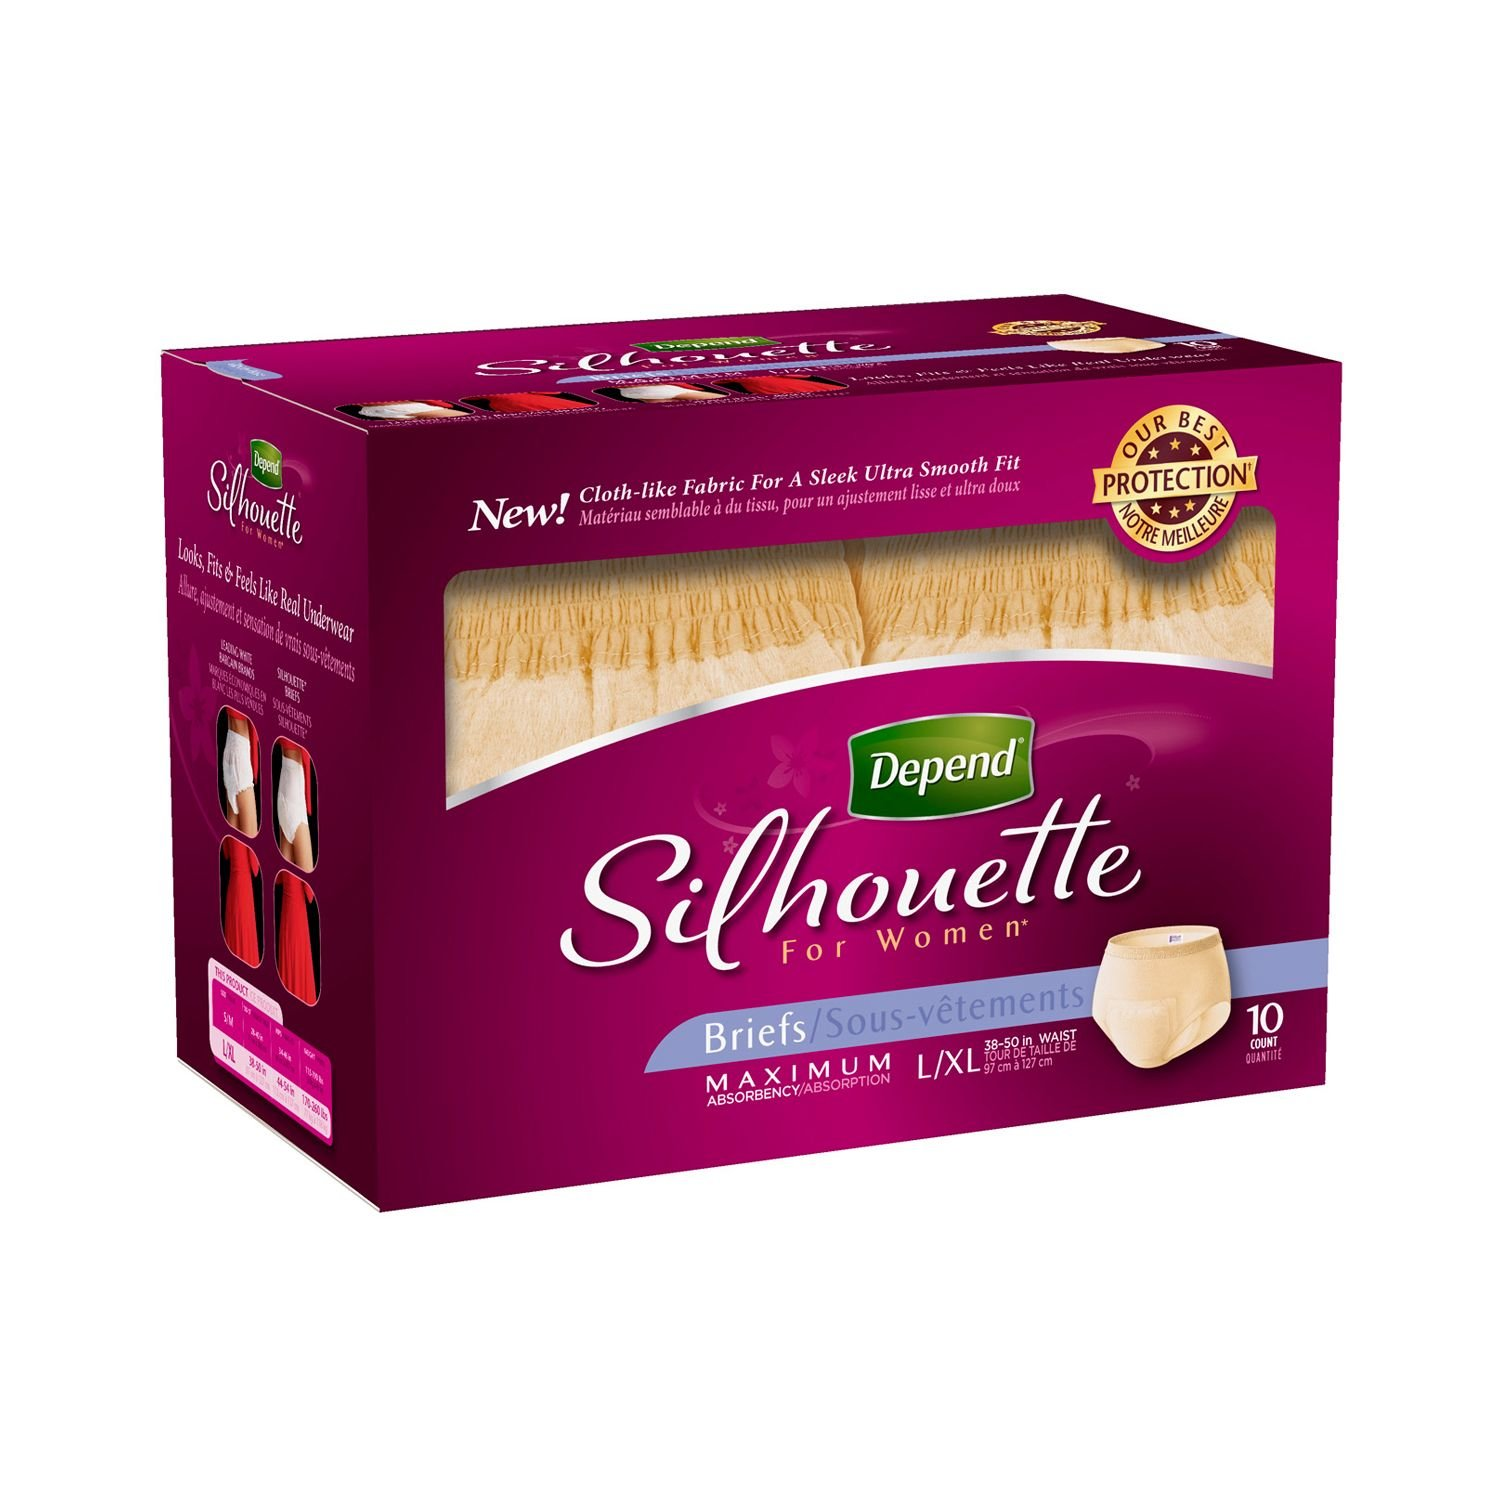 цены Depend Silhouette for Women Briefs - Maximum Absorbency - Large/Extra Large - 80 ct.